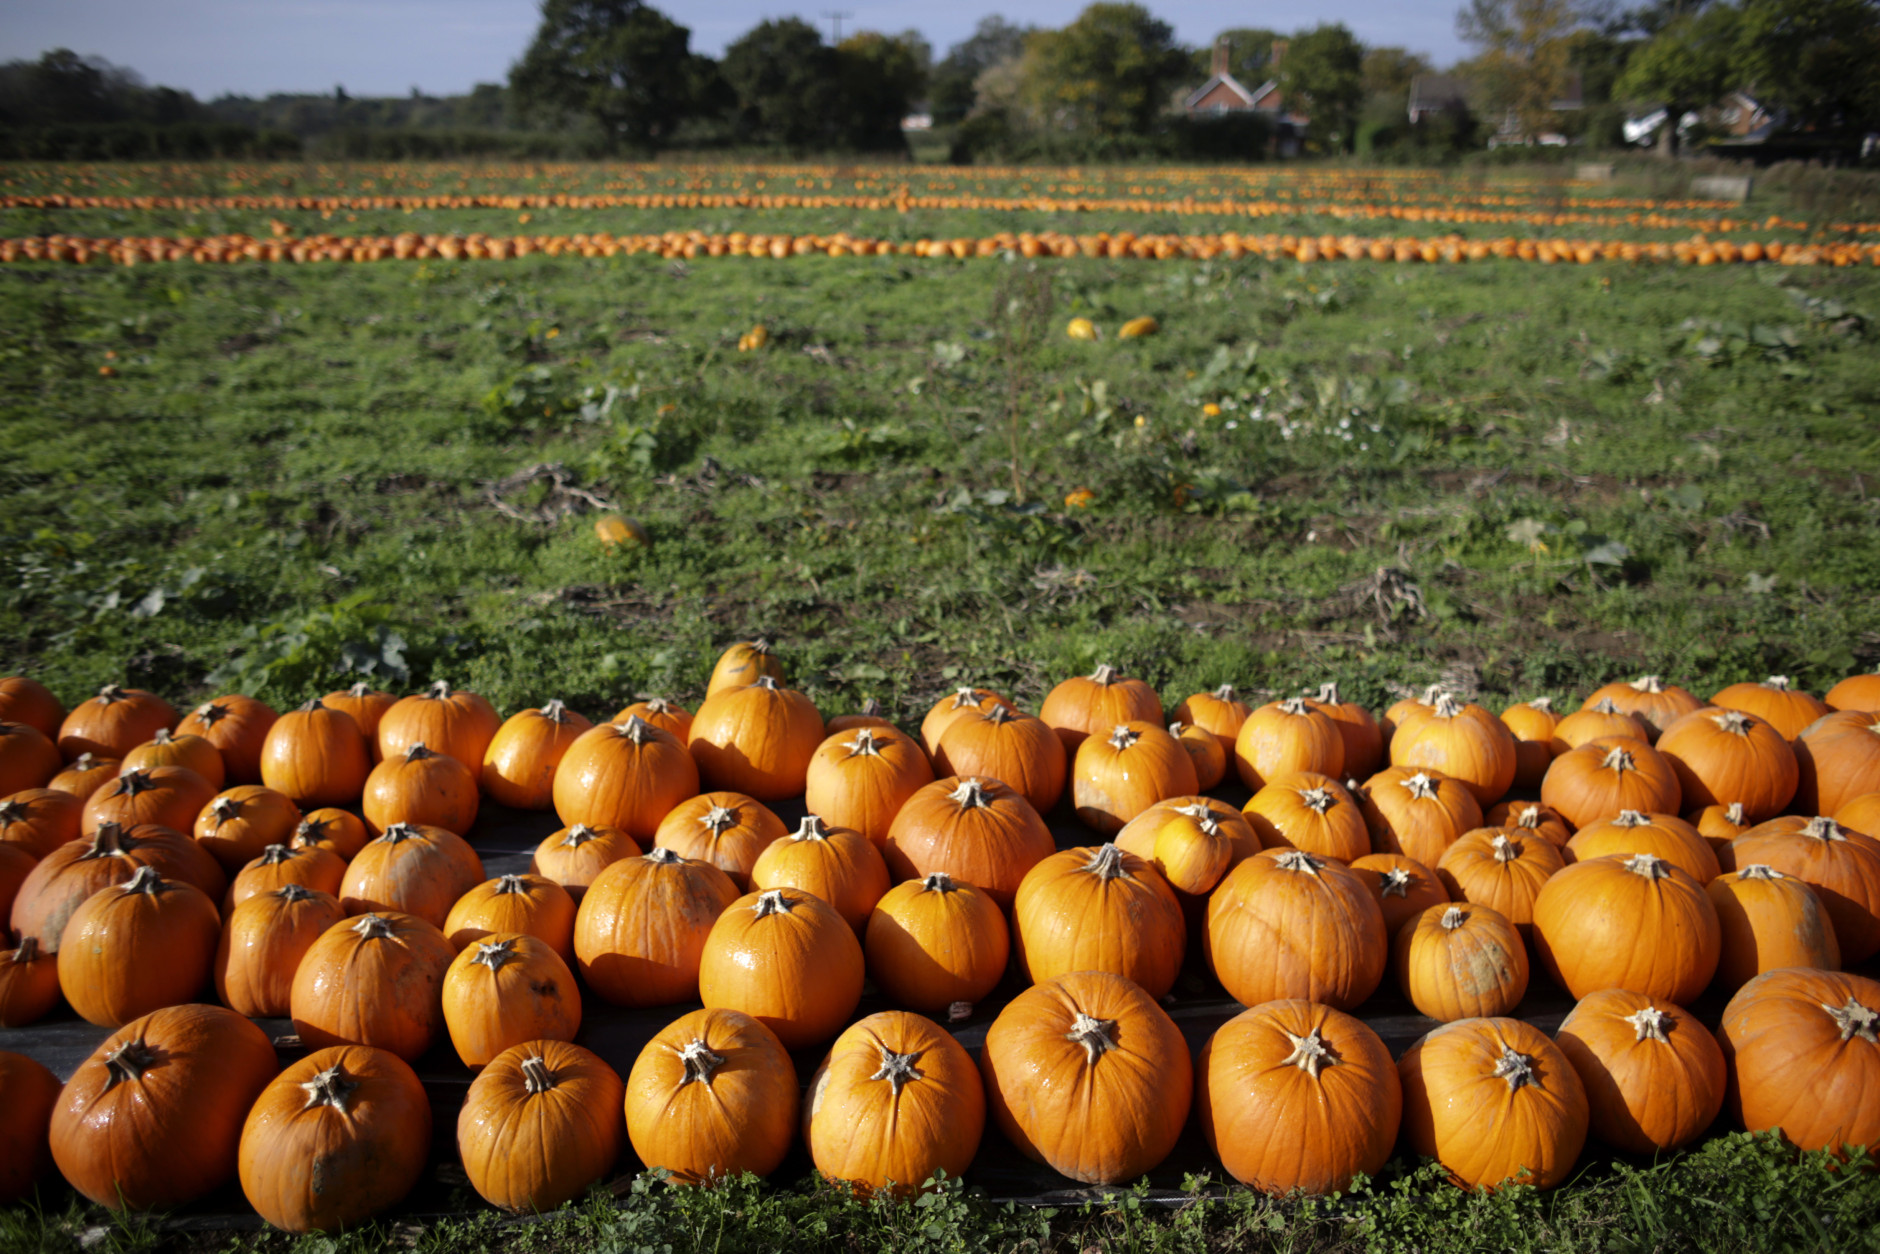 LANDFORD, UNITED KINGDOM - OCTOBER 22:  Pumpkins in a field at Lyburn Farm in Landford wait to be picked and collected on October 22, 2014 in Wiltshire, England. Although some farmers have been warning of a pumpkin shortage due to the recent wet weather, the main supermarkets are confident of meeting demand which has increased as the popularity of Halloween grows in the UK. Out of the 10 million pumpkins it is estimated that will be grown this year, the majority will be made into Halloween lanterns.  (Photo by Matt Cardy/Getty Images)